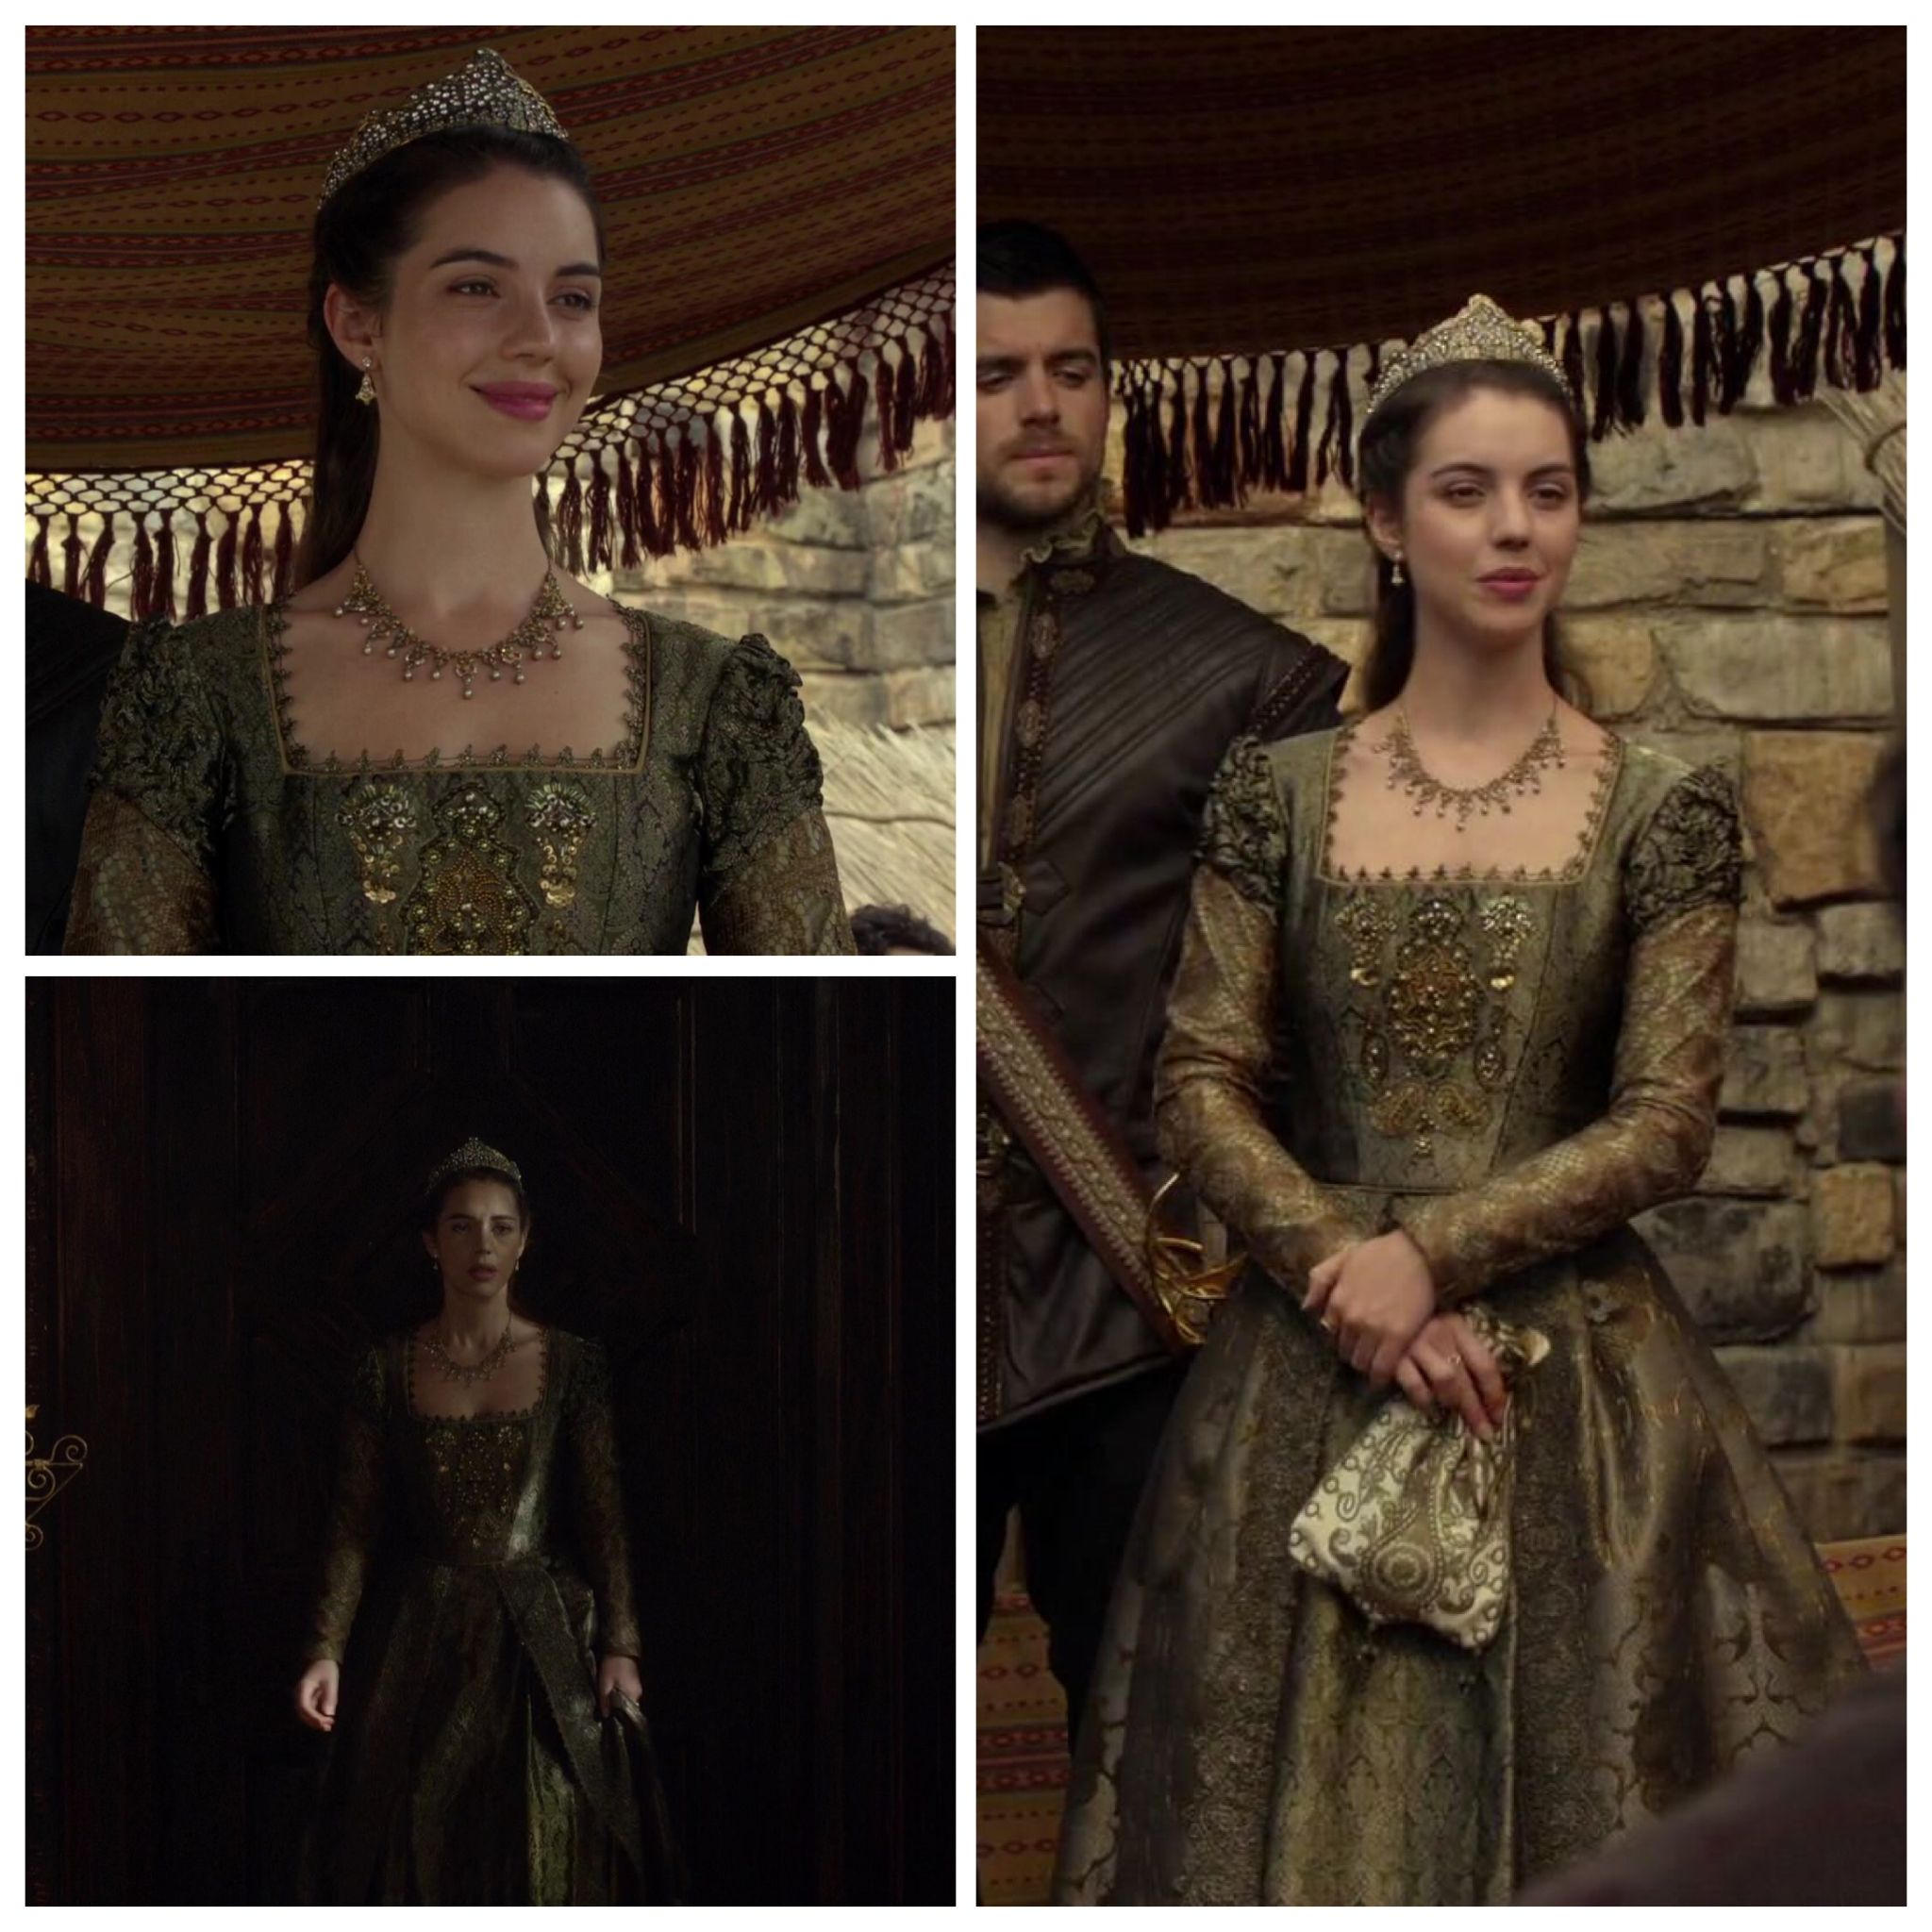 Mary S Olive Green Dress 4x09 Pulling Strings Reign Fashion Reign Dresses Fantasy Dress [ 2048 x 2048 Pixel ]